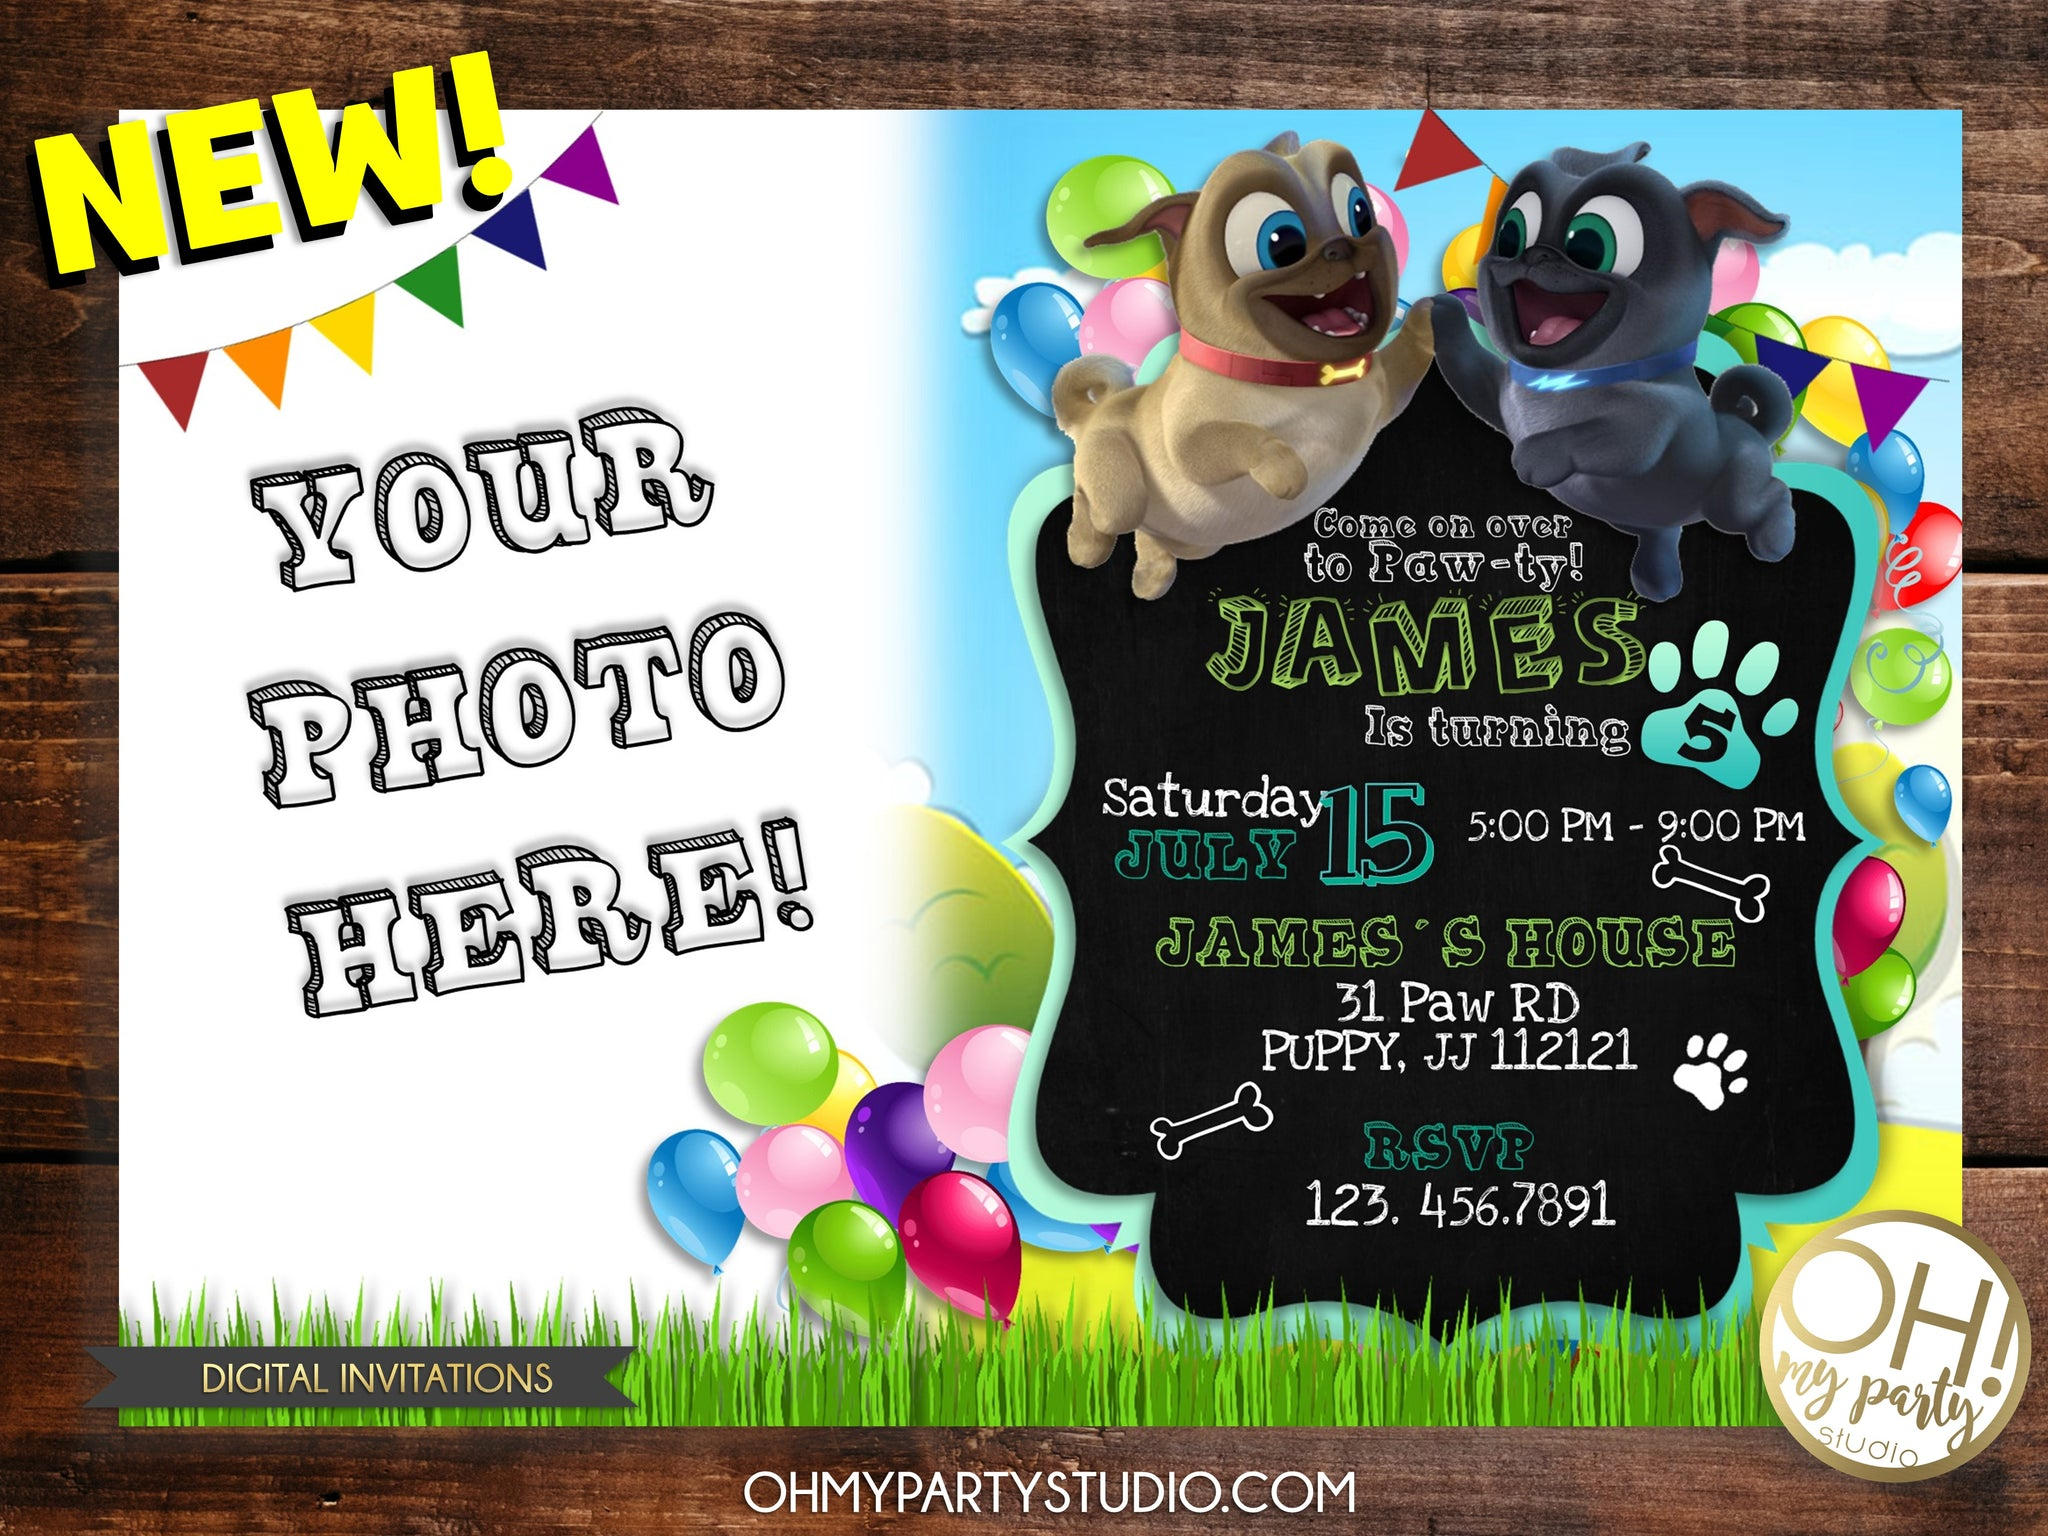 PUPPY DOGS PALS INVITE, PUPPY DOGS PALS BIRTHDAY INVITATION, PUPPY DOGS PALS PARTY,PUPPY DOGS PALS BIRTHDAY ,PUPPY DOGS PALS INVITATIONS